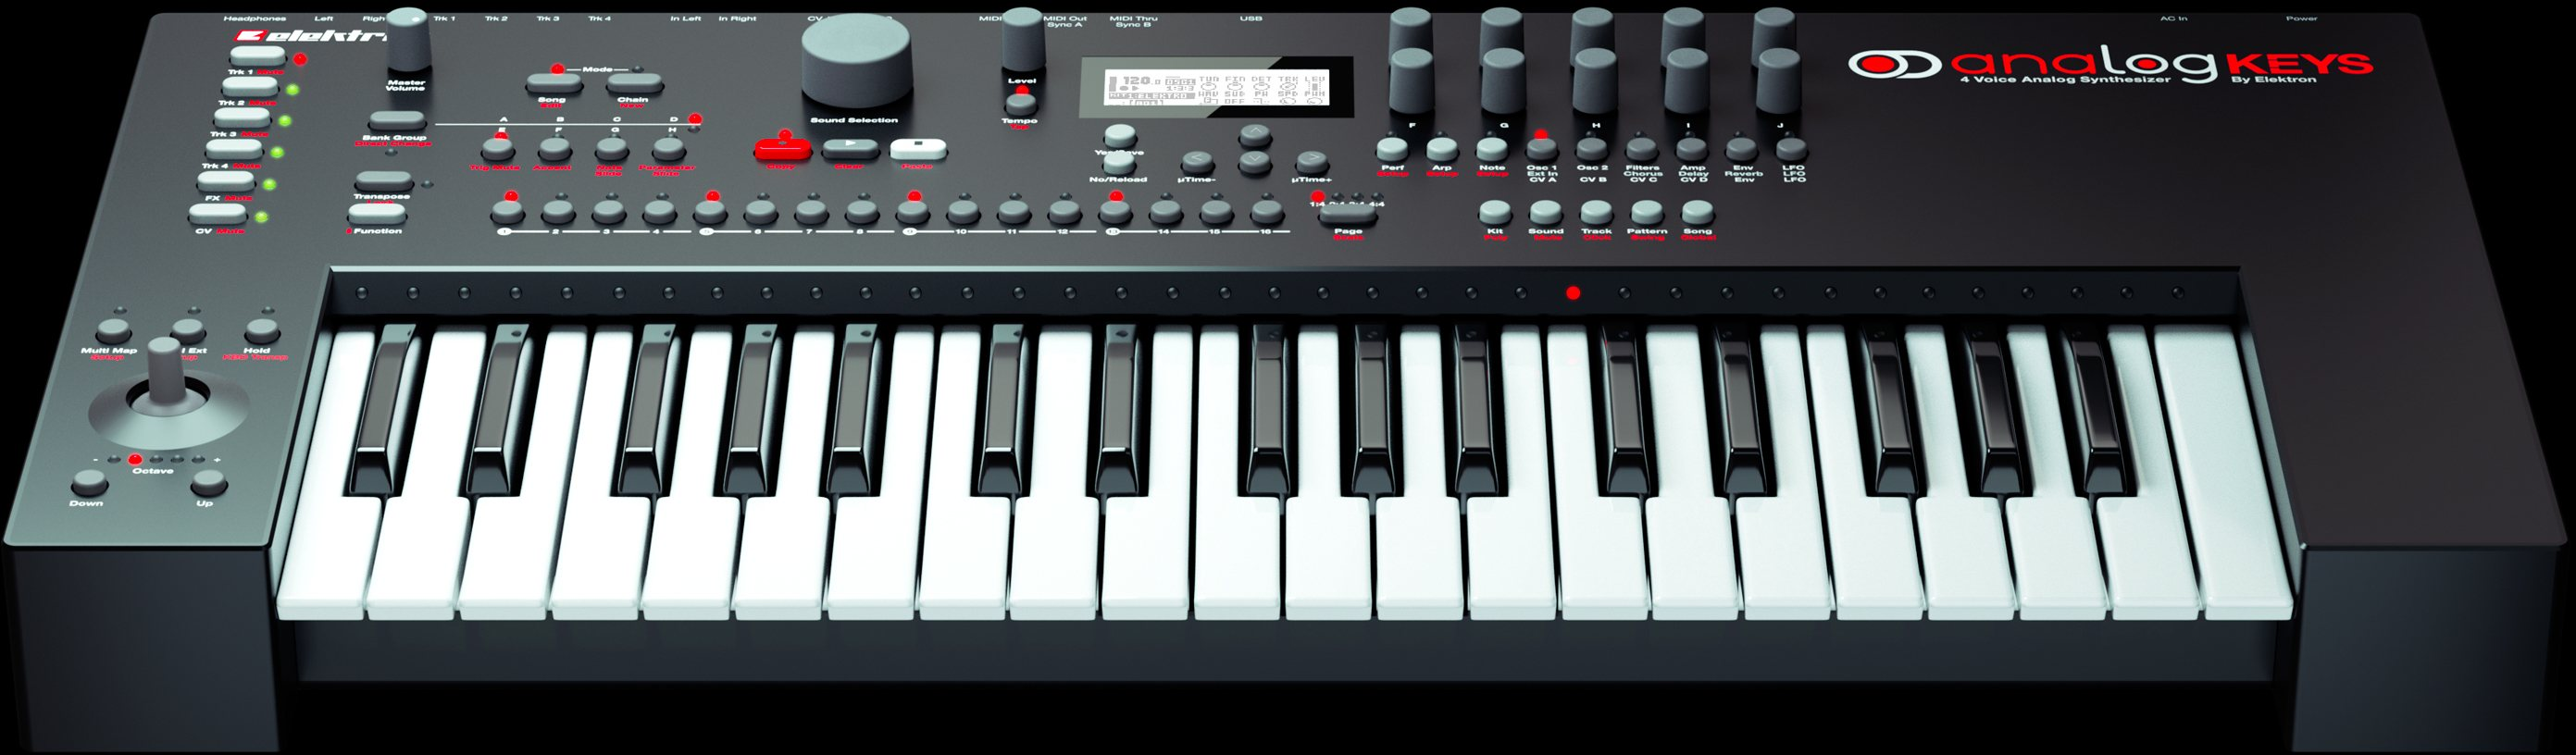 elektron analog keys  pictures  details  media  how it